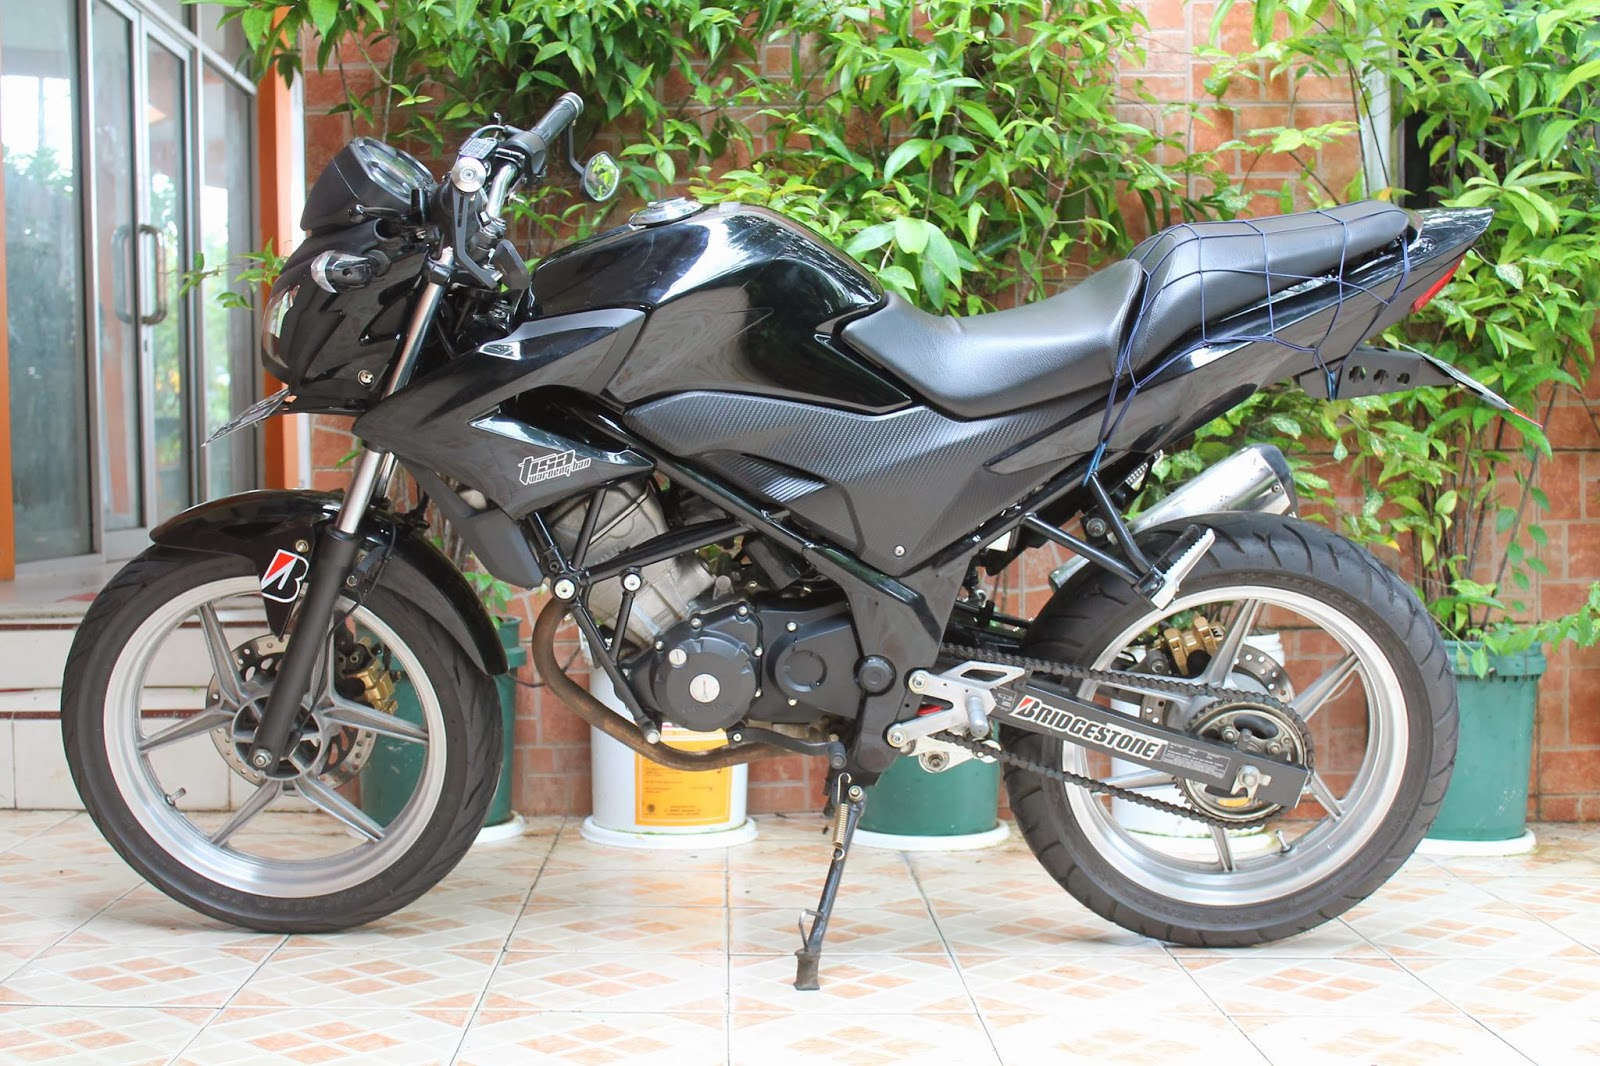 Modifikasi Motor Cb150r Warna Hitam Dop Modifikasi Motor